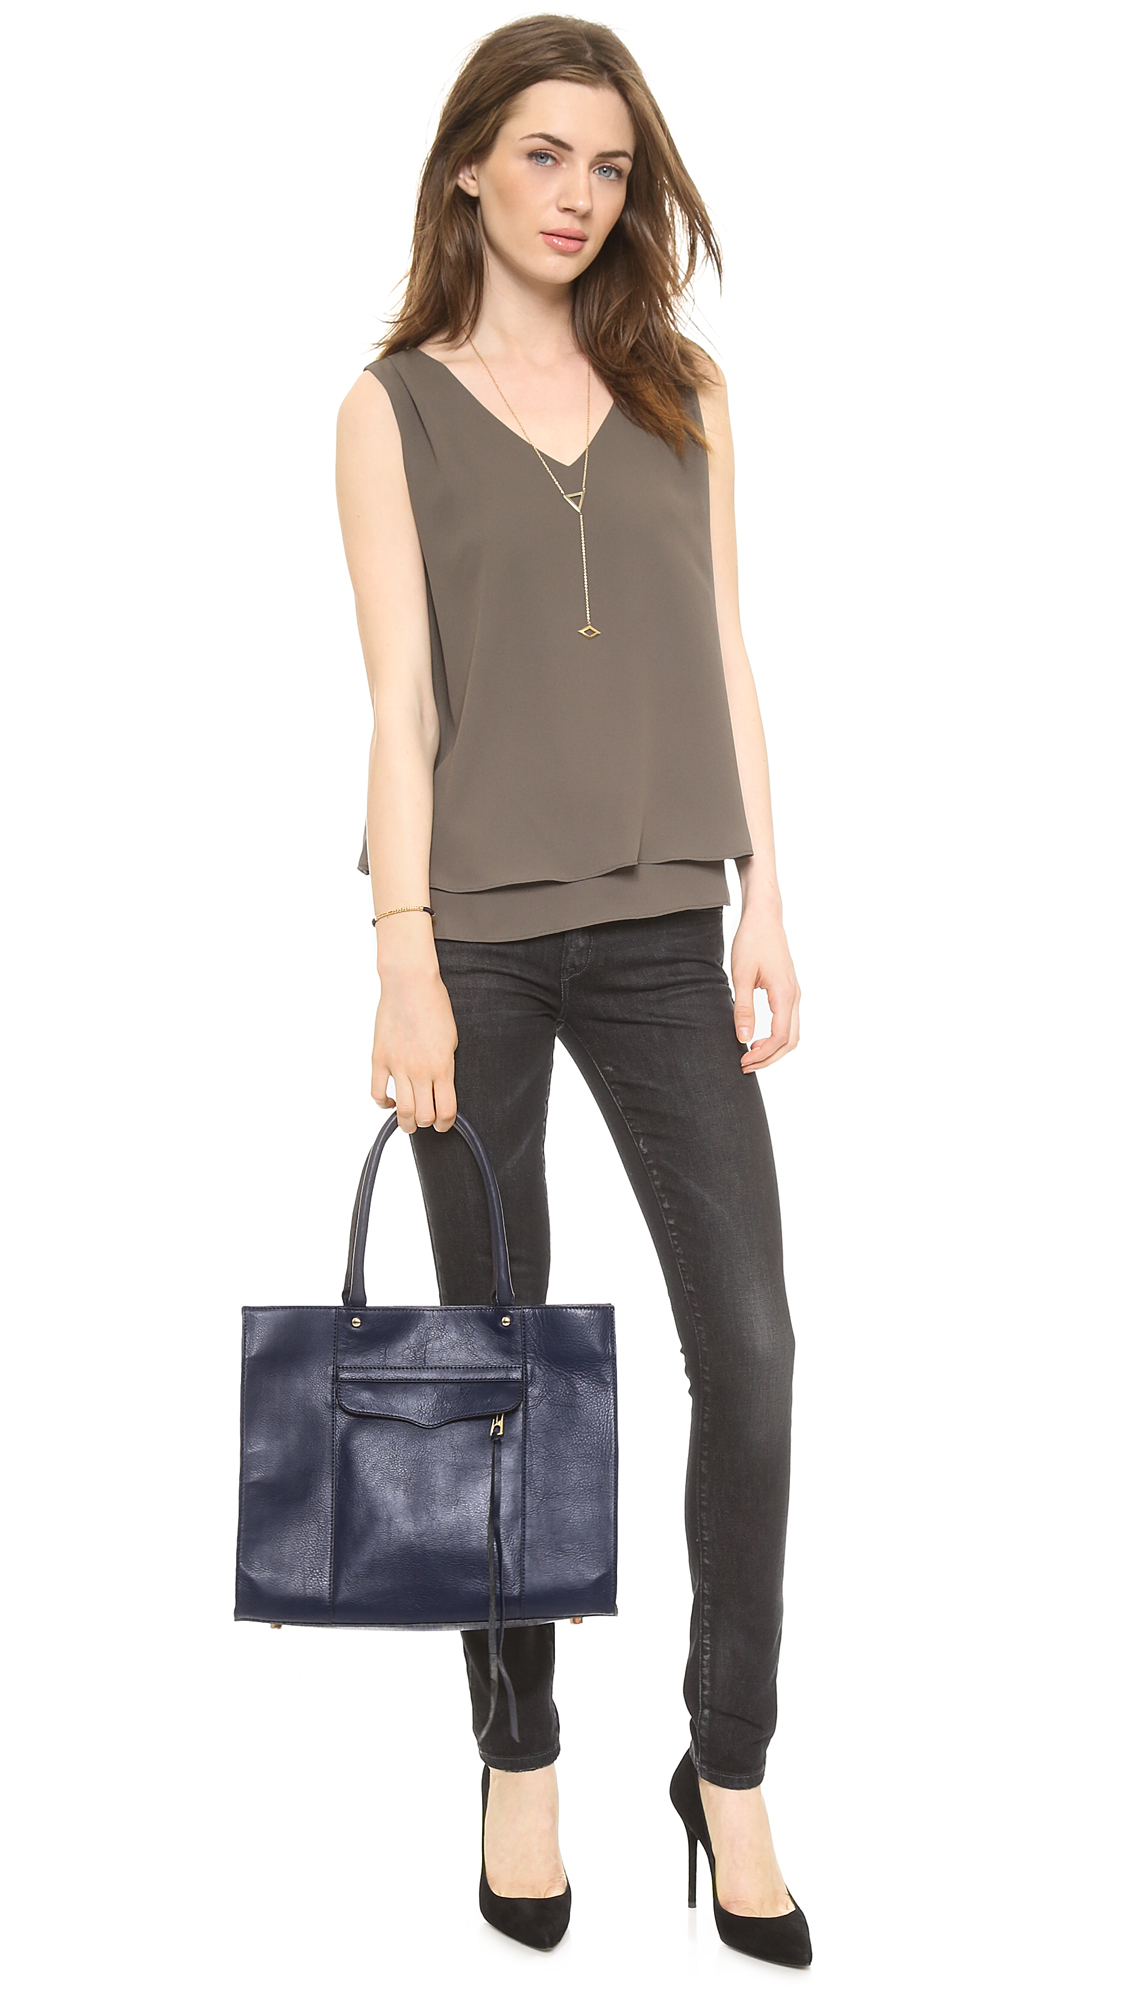 Rebecca Minkoff Medium Mab Tote Black Cherry In Blue Lyst